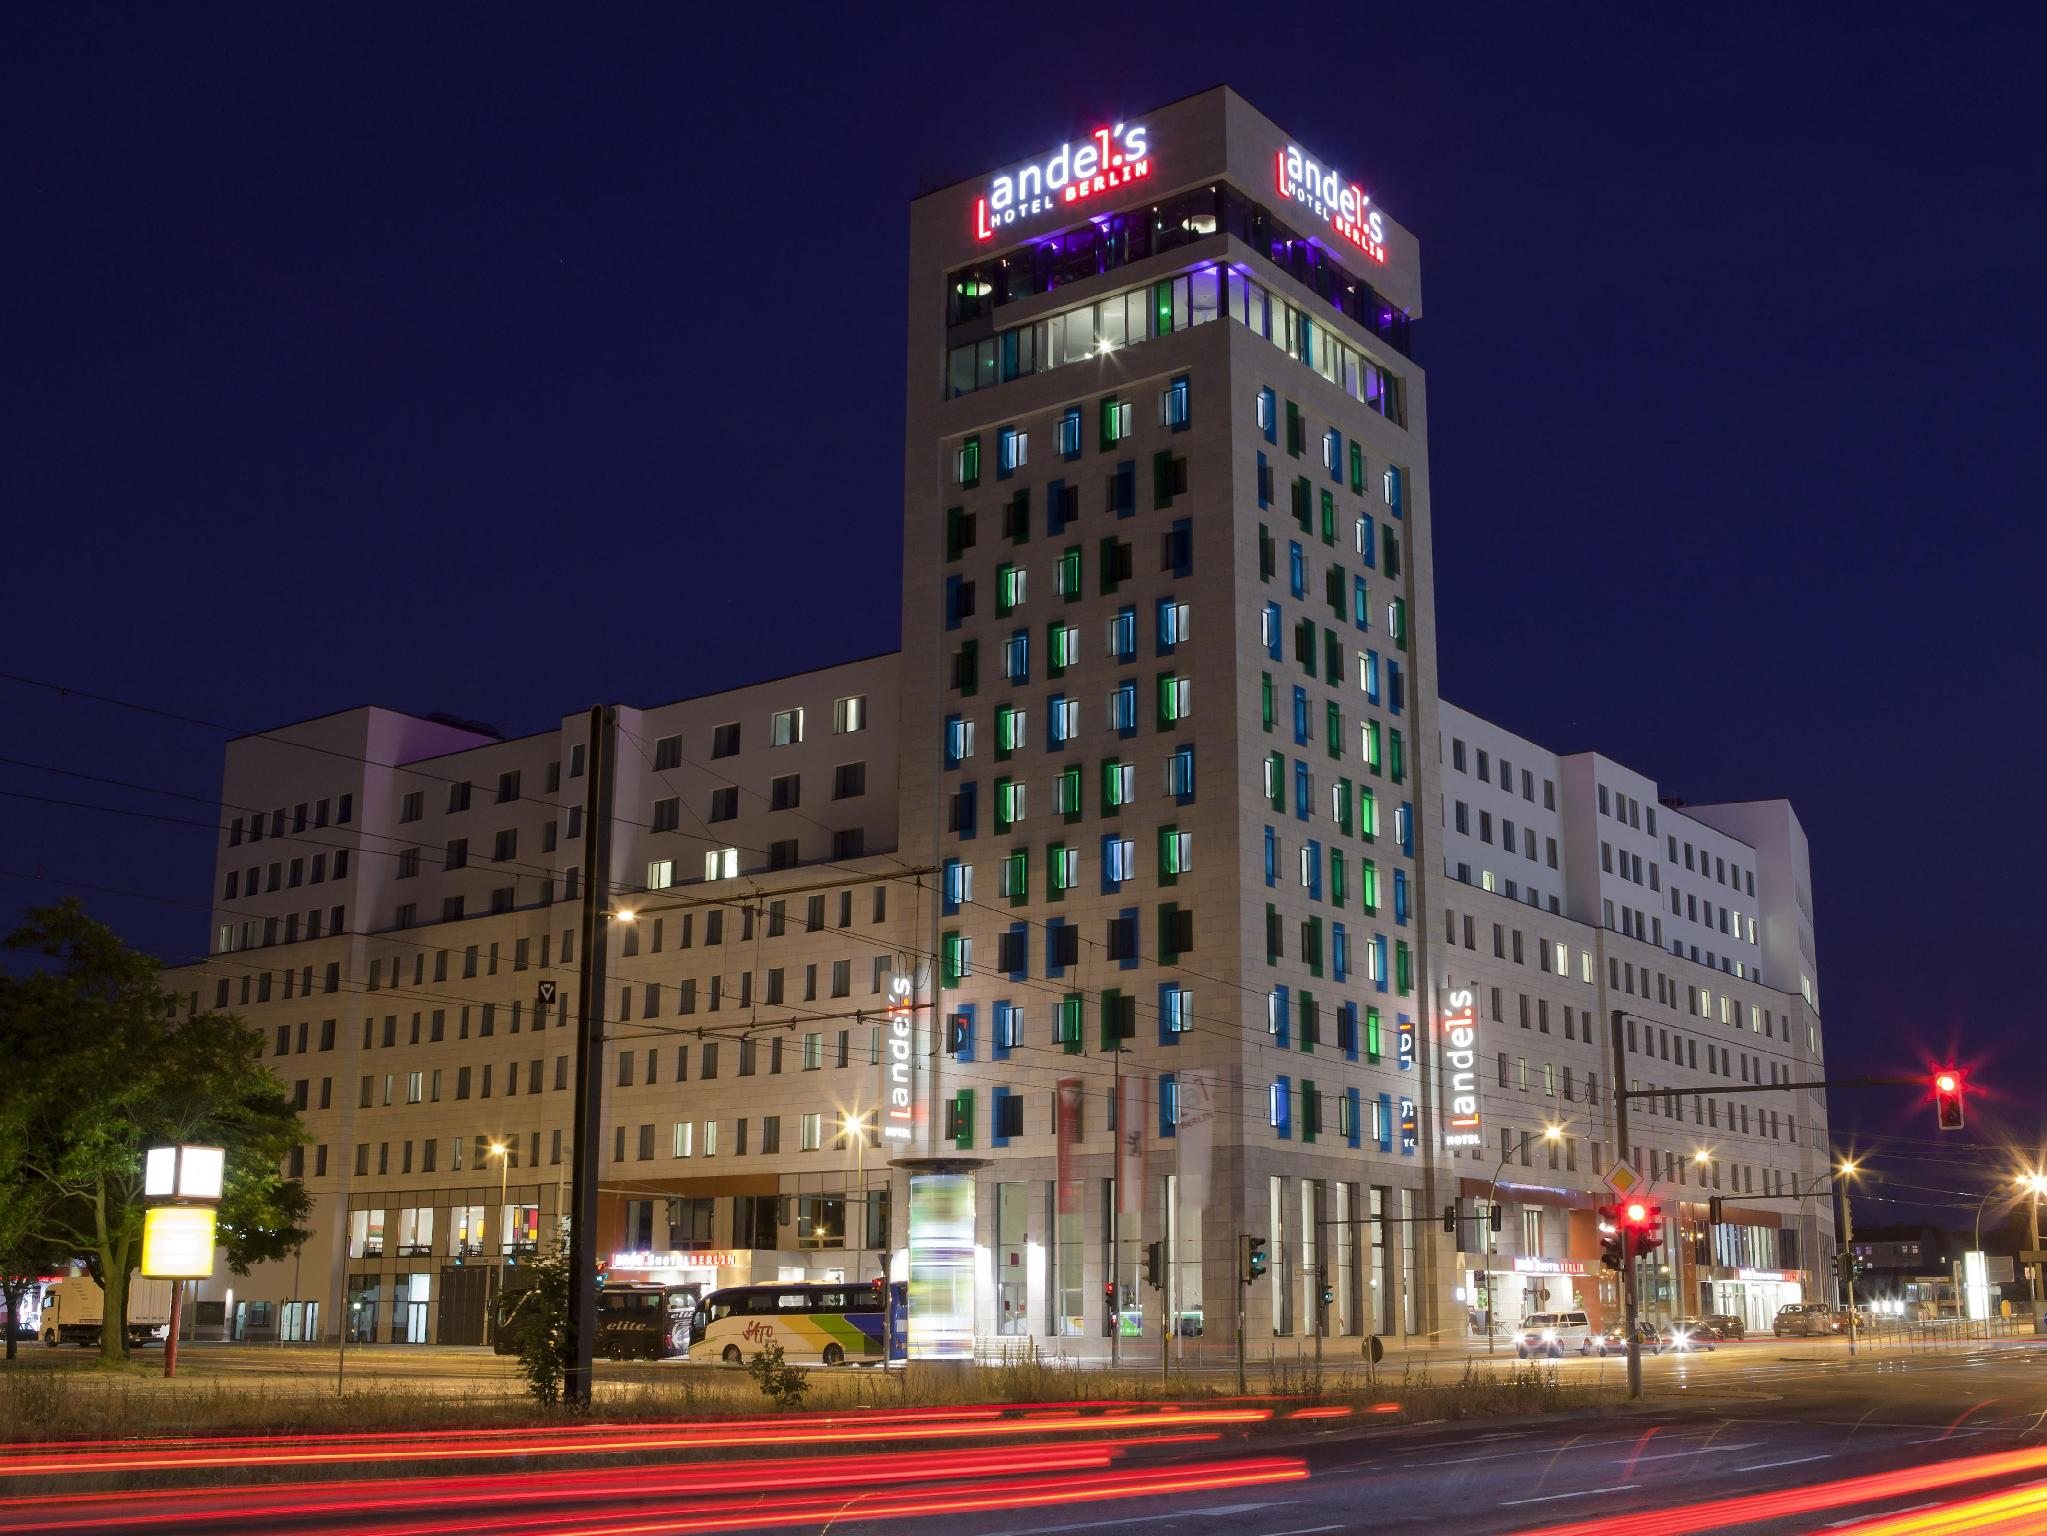 andel's Hotel Berlin, managed by Vienna International Hotels and Resorts Βερολίνο